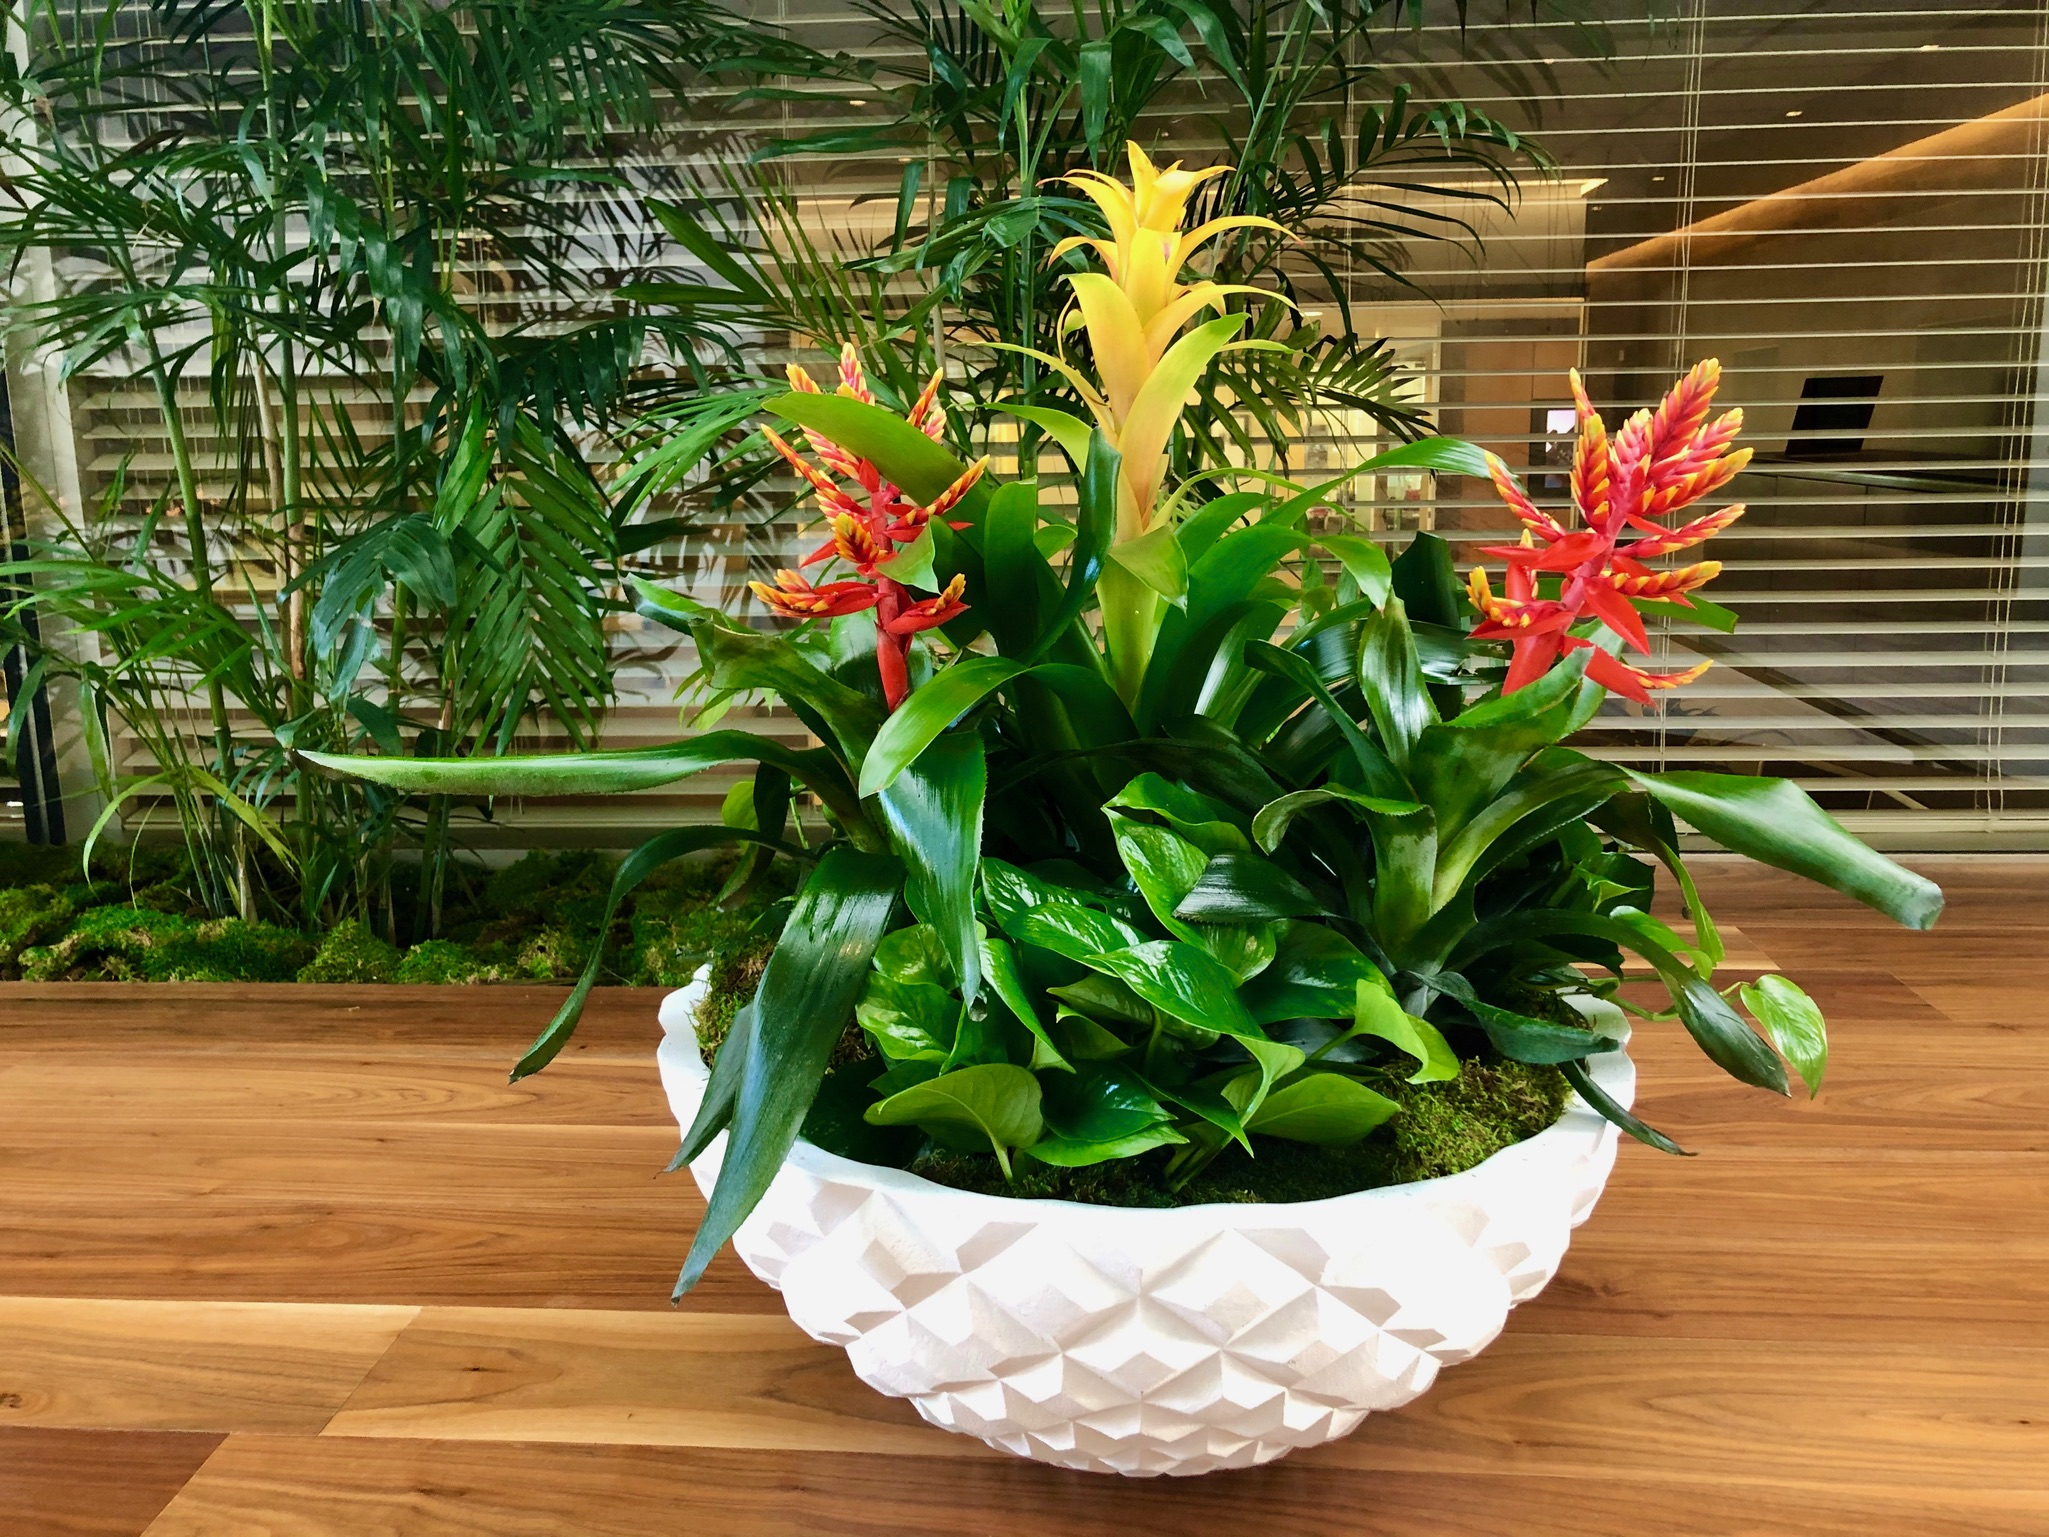 Bromeliad Diamond Bowl with Golden Jade Pothos